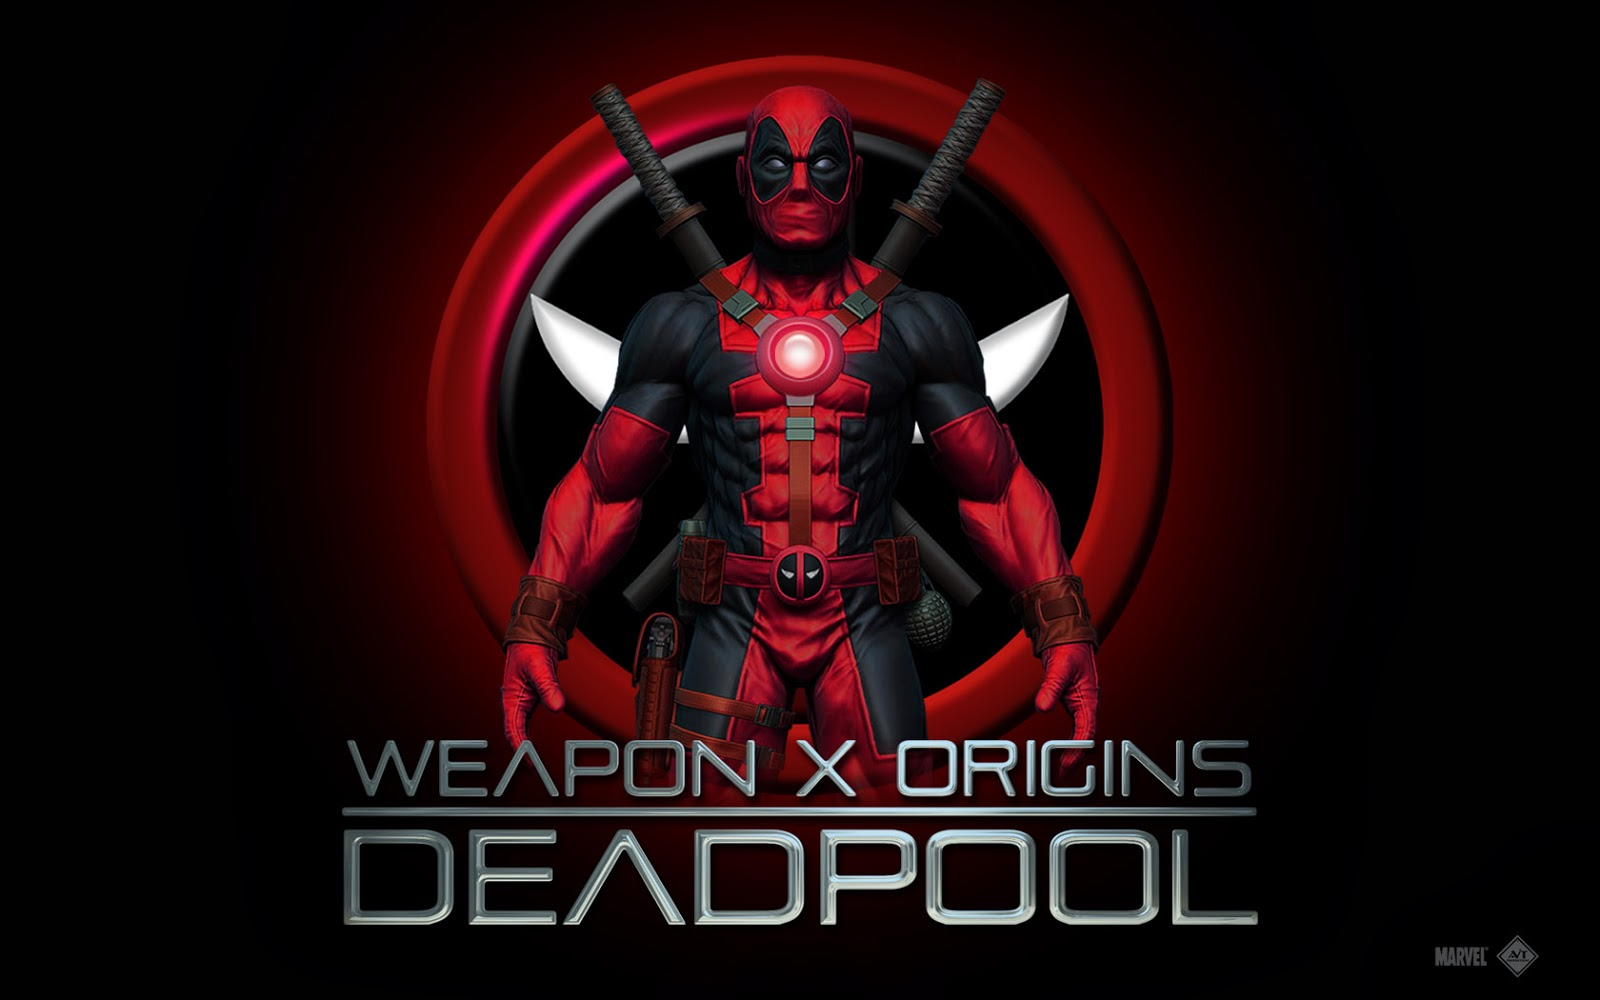 deadpool movie wallpaper 17713 hd wallpapersjpg 1600x1000